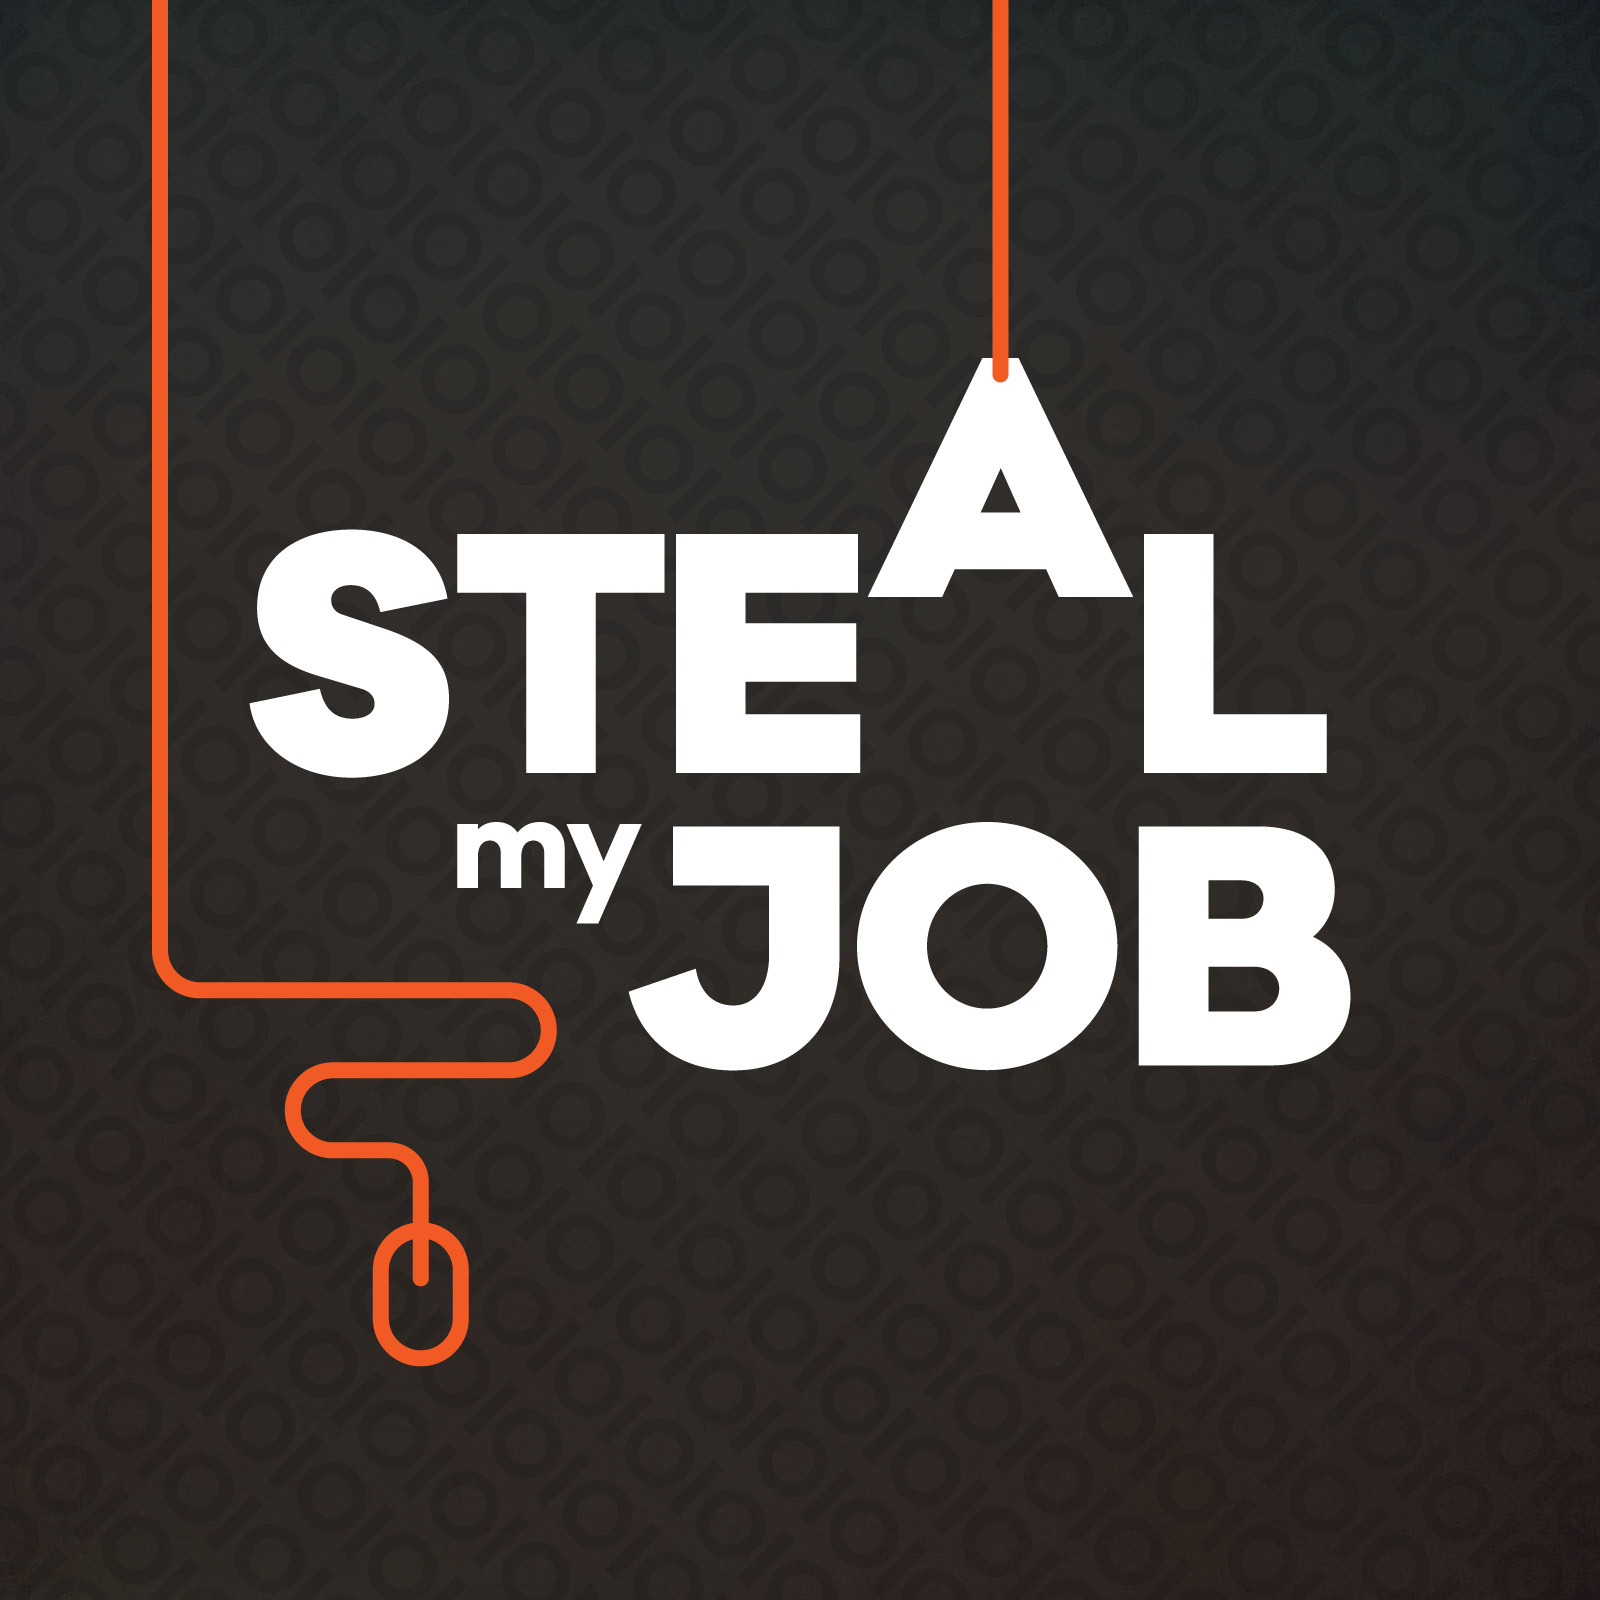 Steal my job